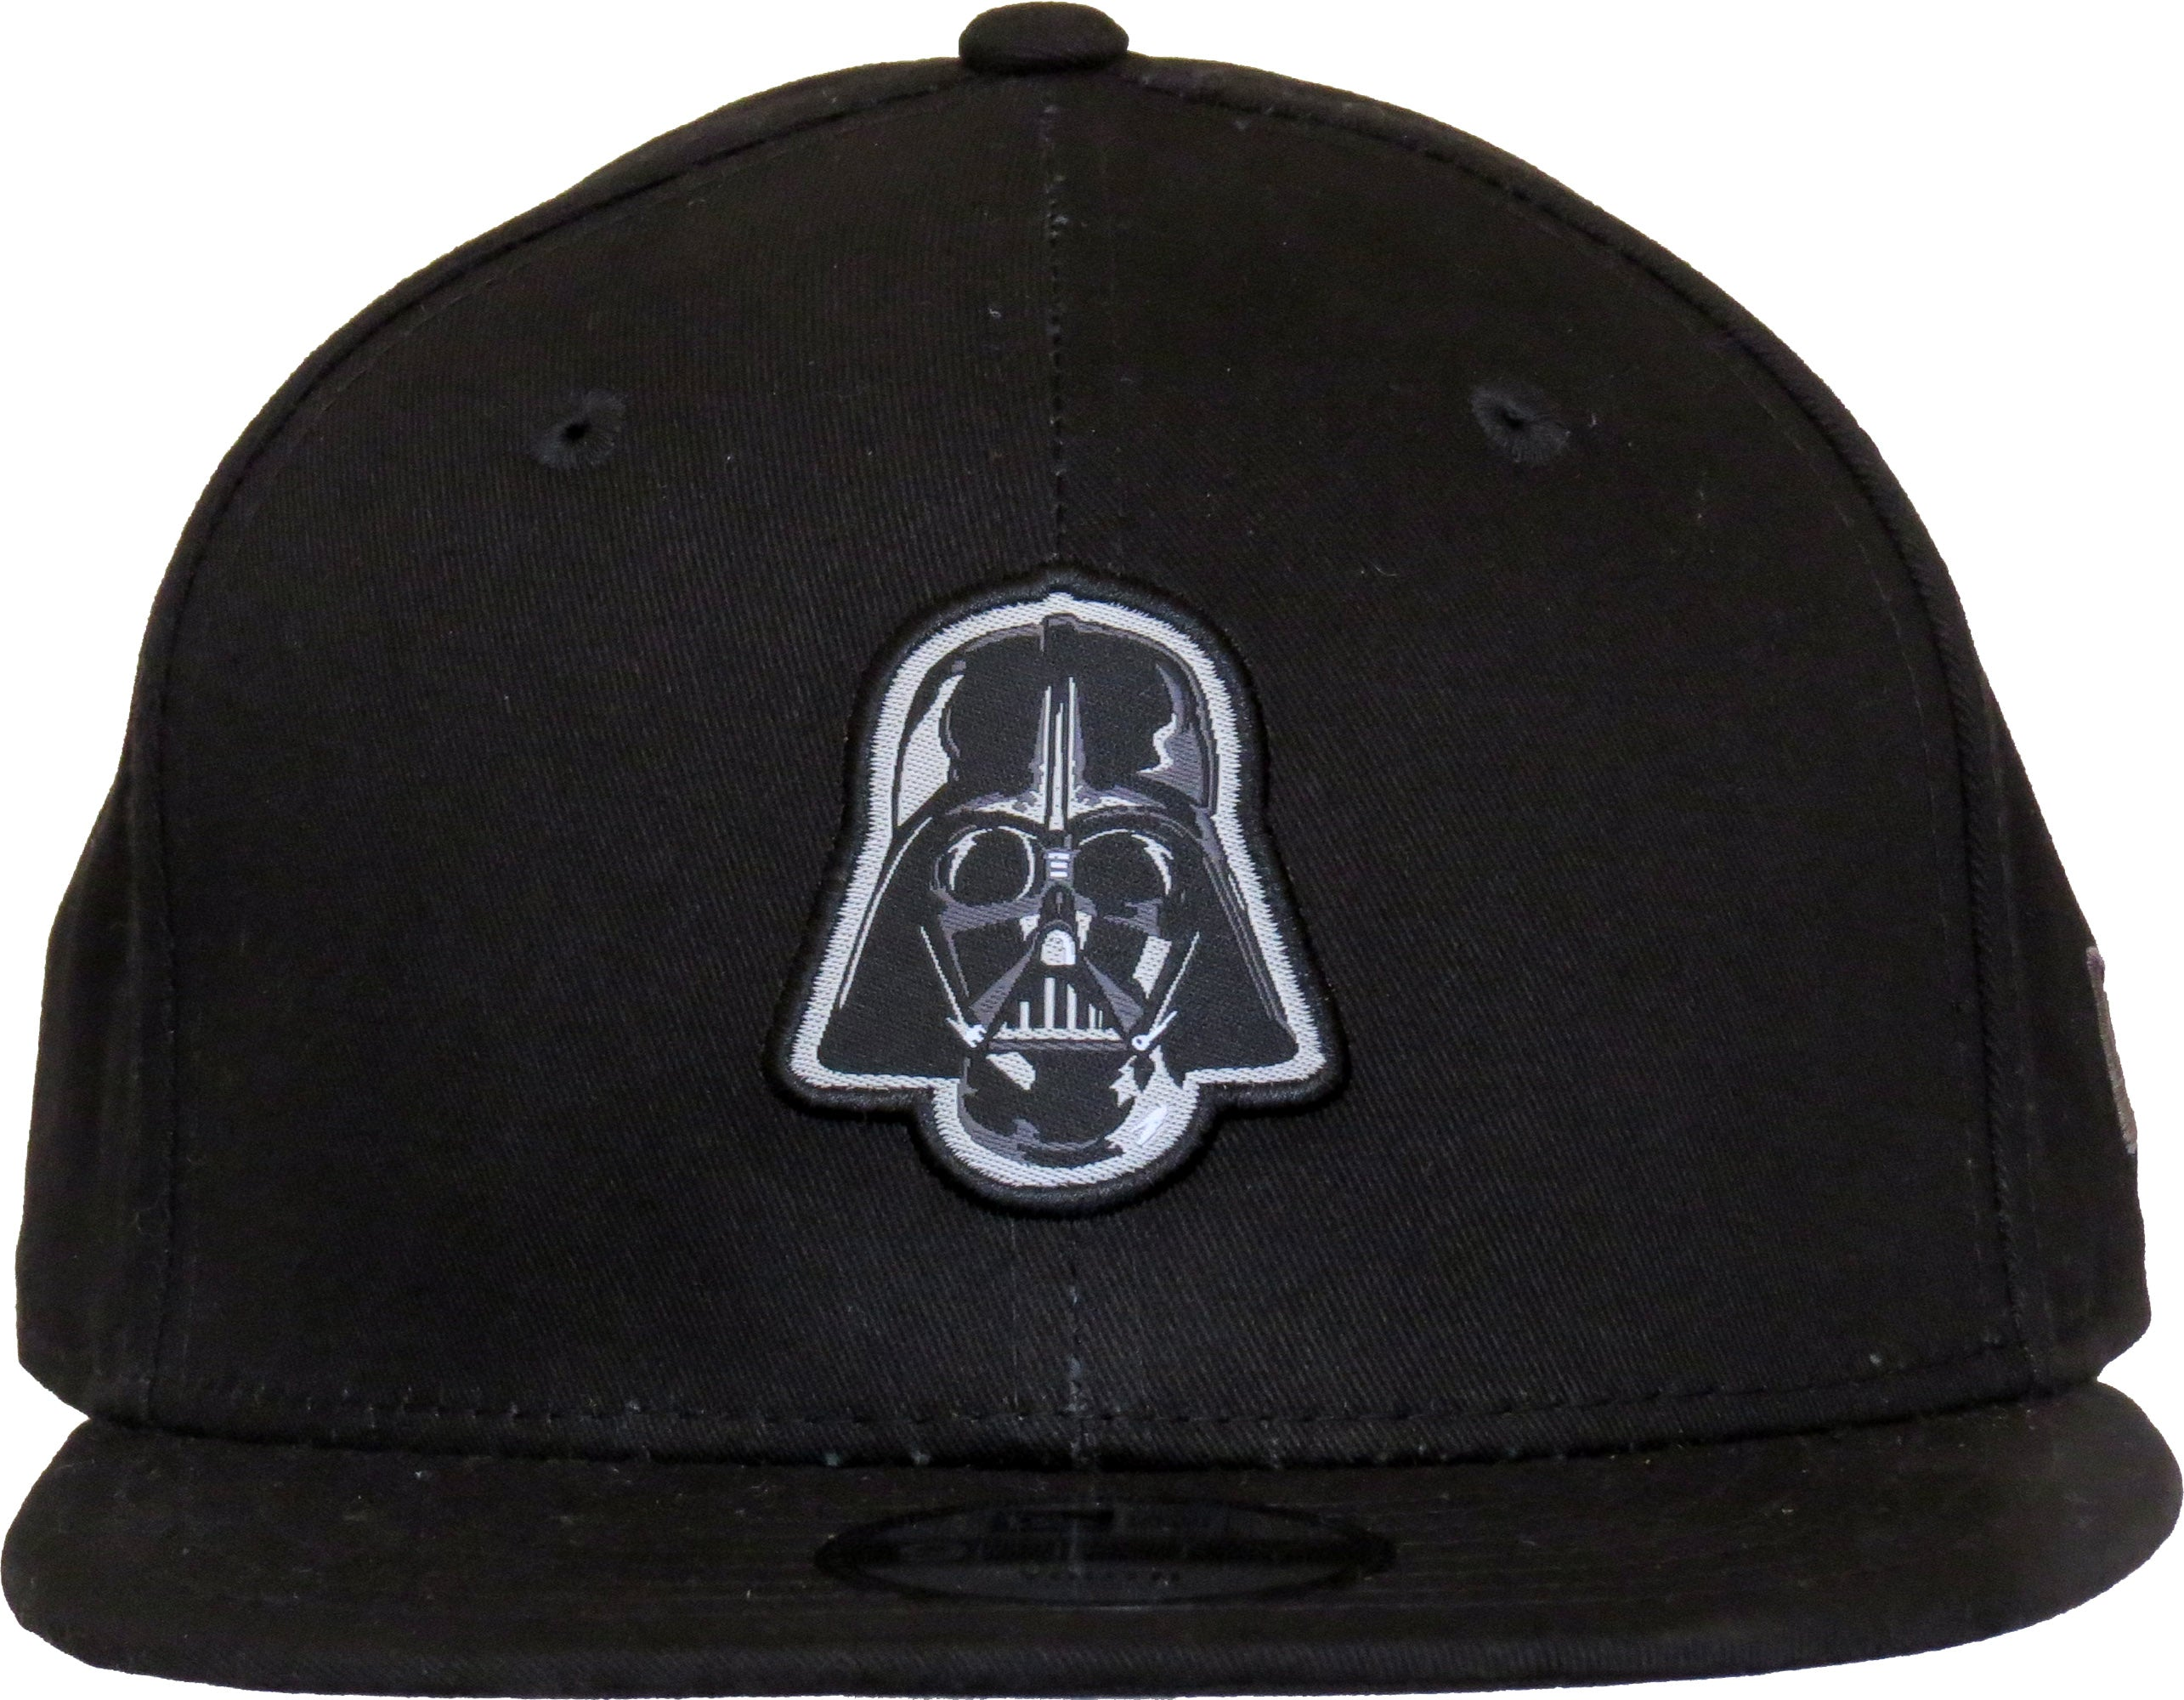 lowest price b22f9 627d0 Star Wars New Era 950 Kids Darth Vader Snapback Cap (Ages 4 - 10 years)